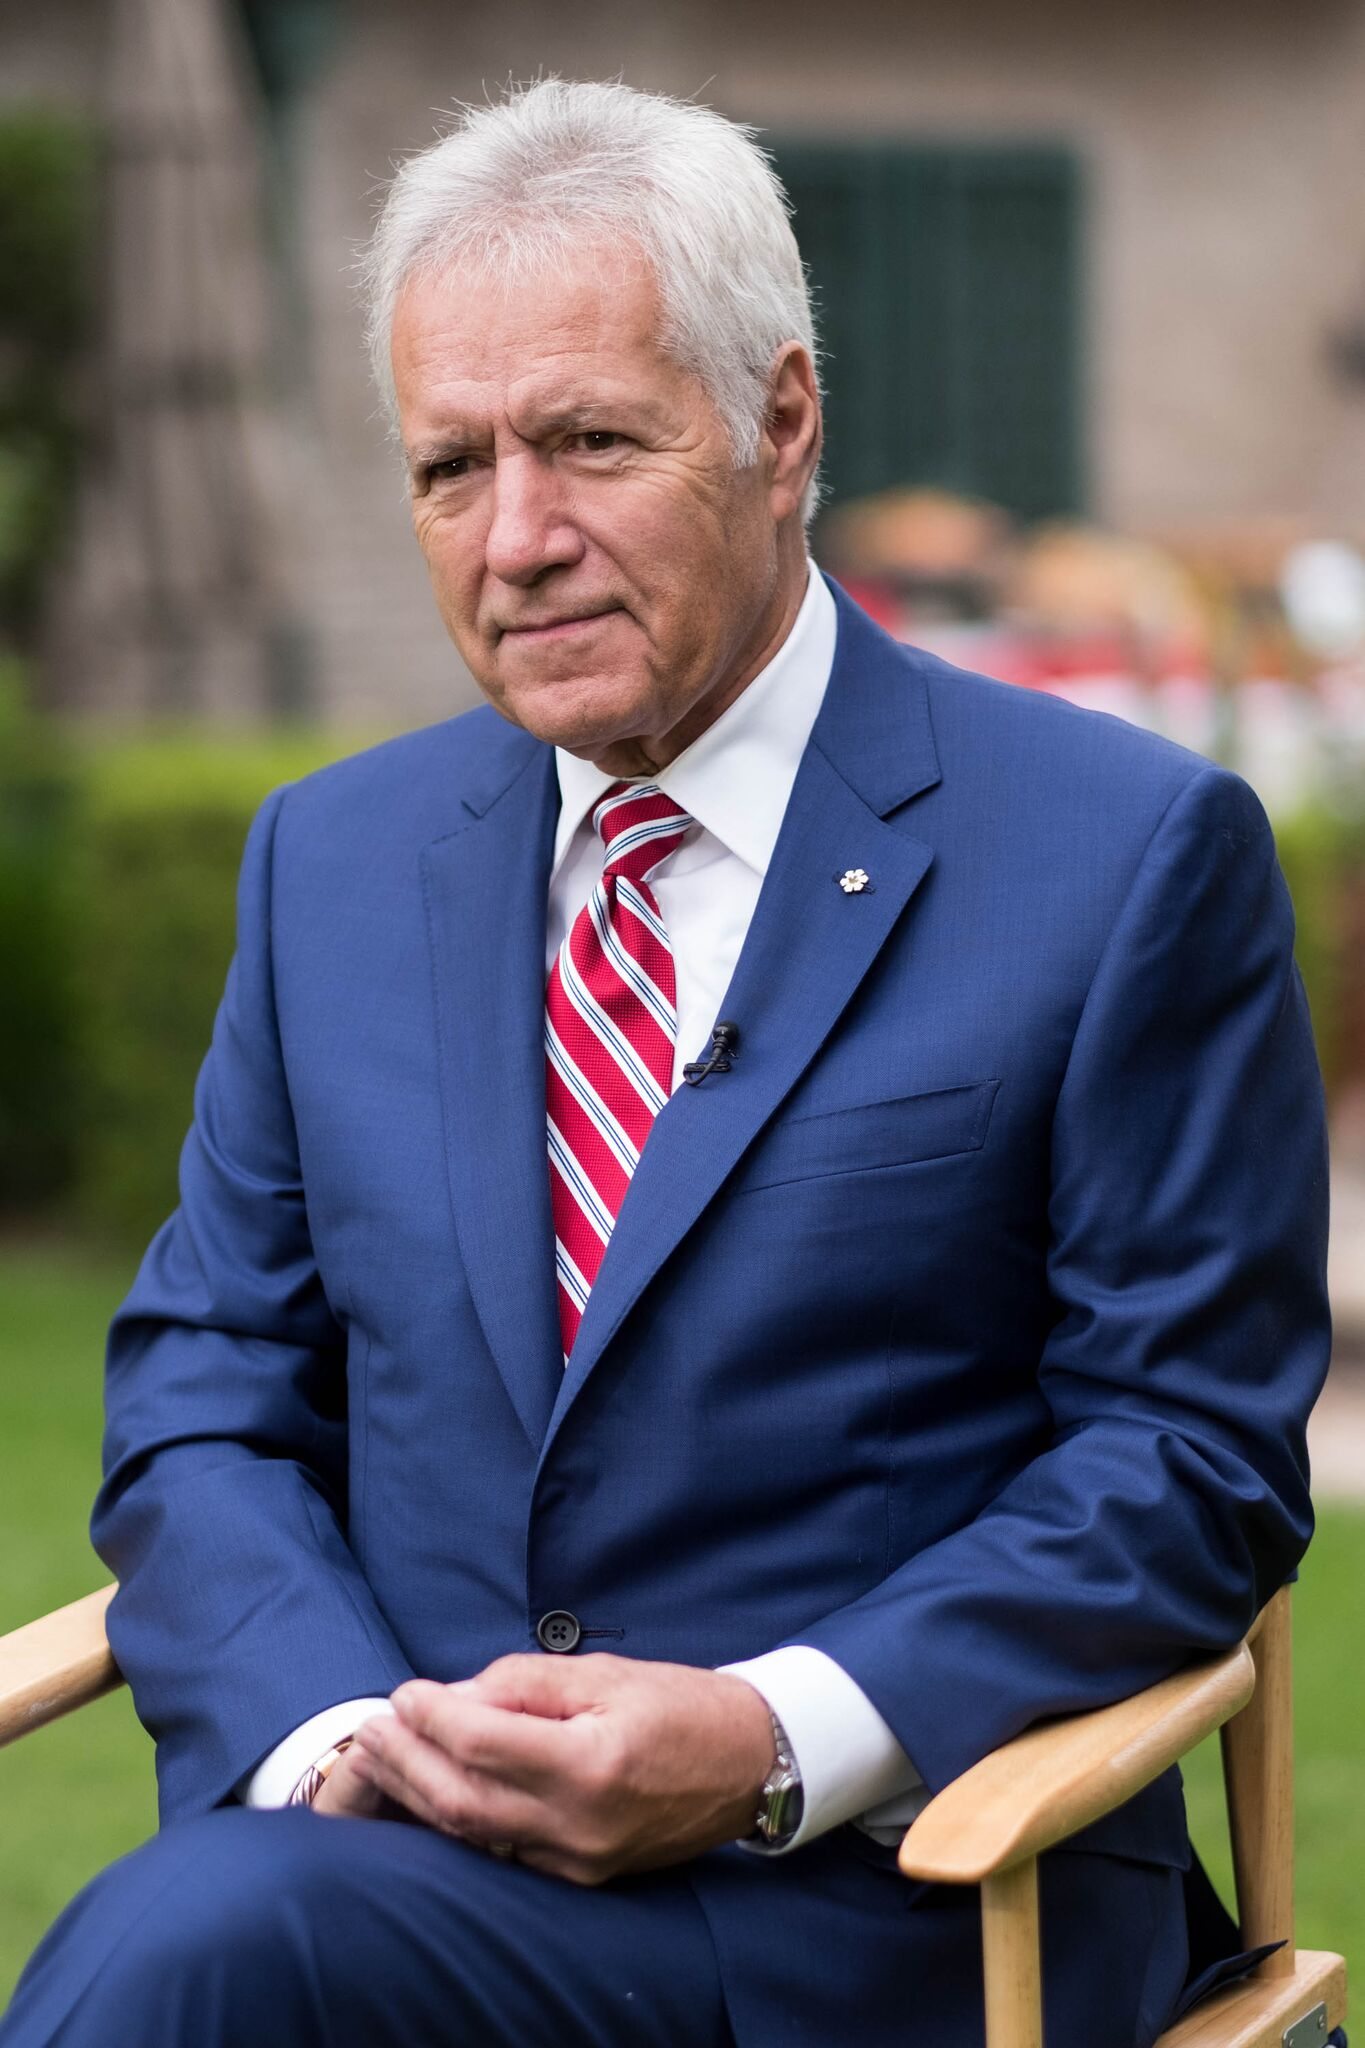 TV personality Alex Trebek attends the 150th anniversary of Canada's Confederation at the Official Residence of Canada   Getty Images